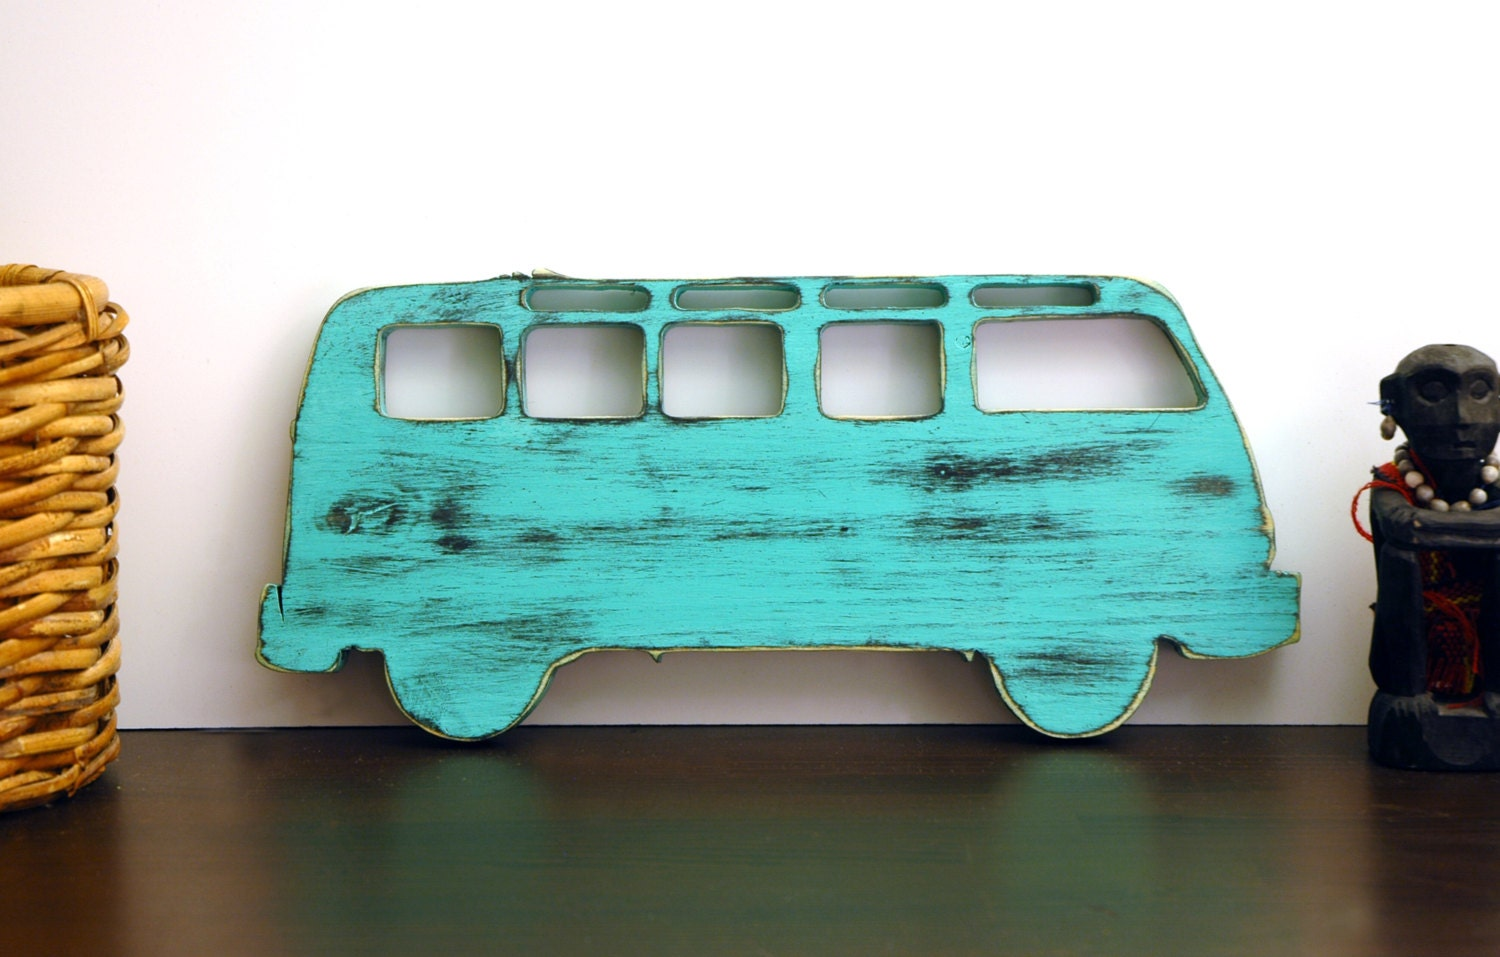 Custom Wood Car Cut Out and Mancave Wall Art Gifts - Any Car Can Be Shaped - JetmakDesigns